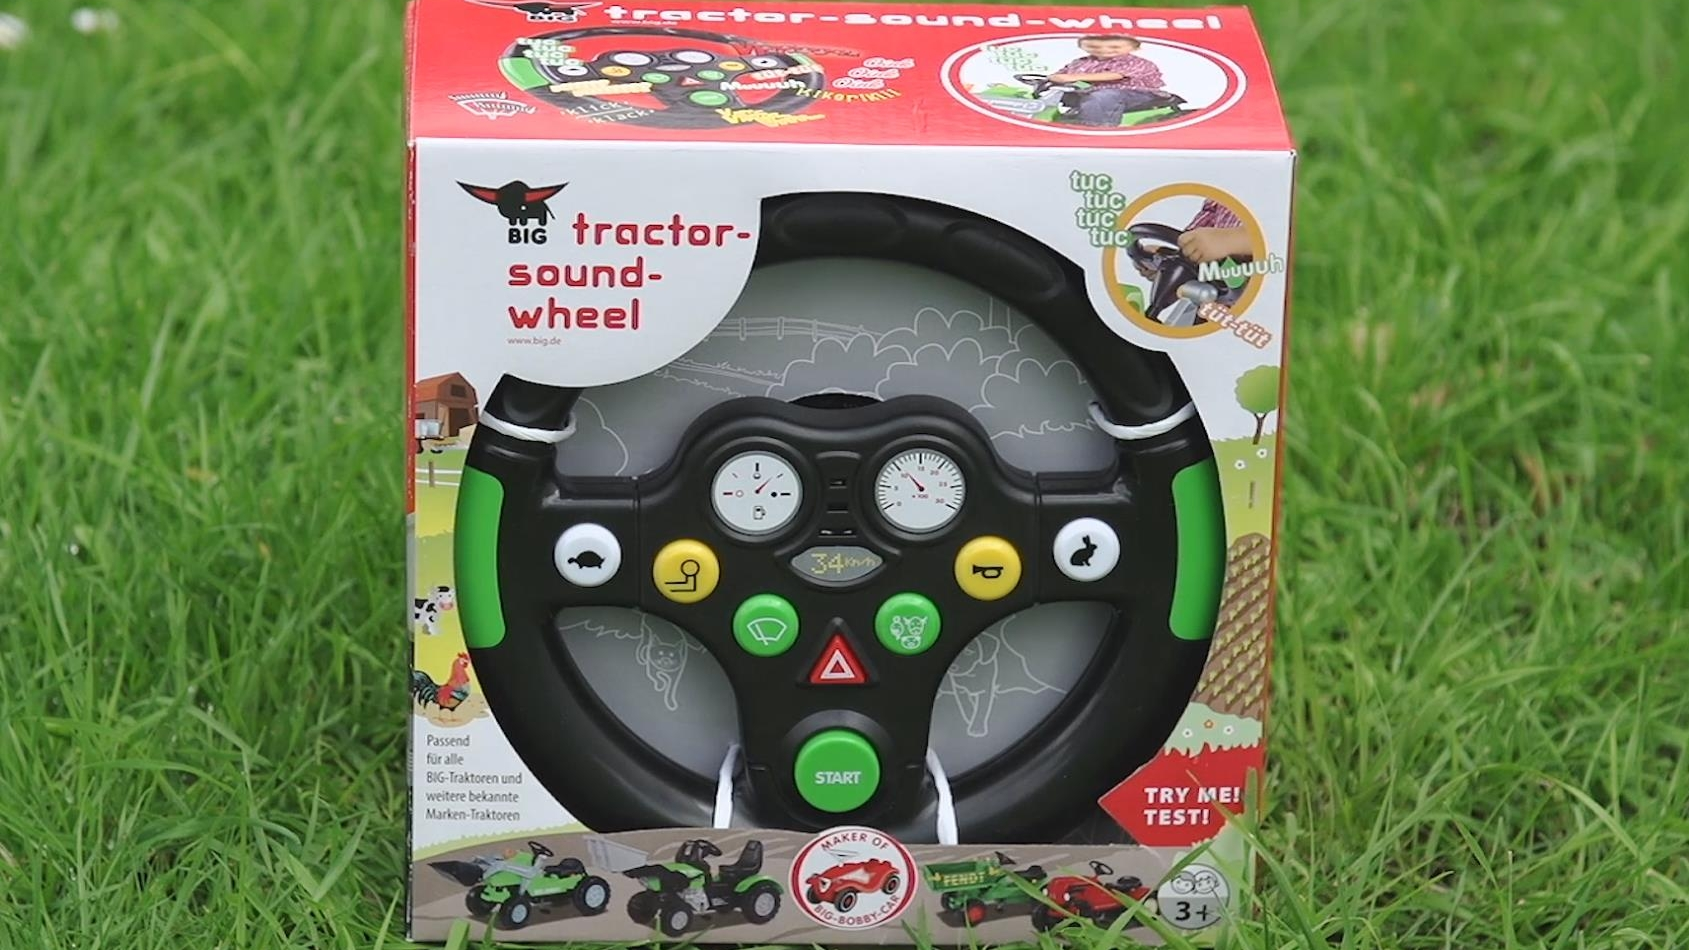 BIG-Tractor-Sound-Wheel